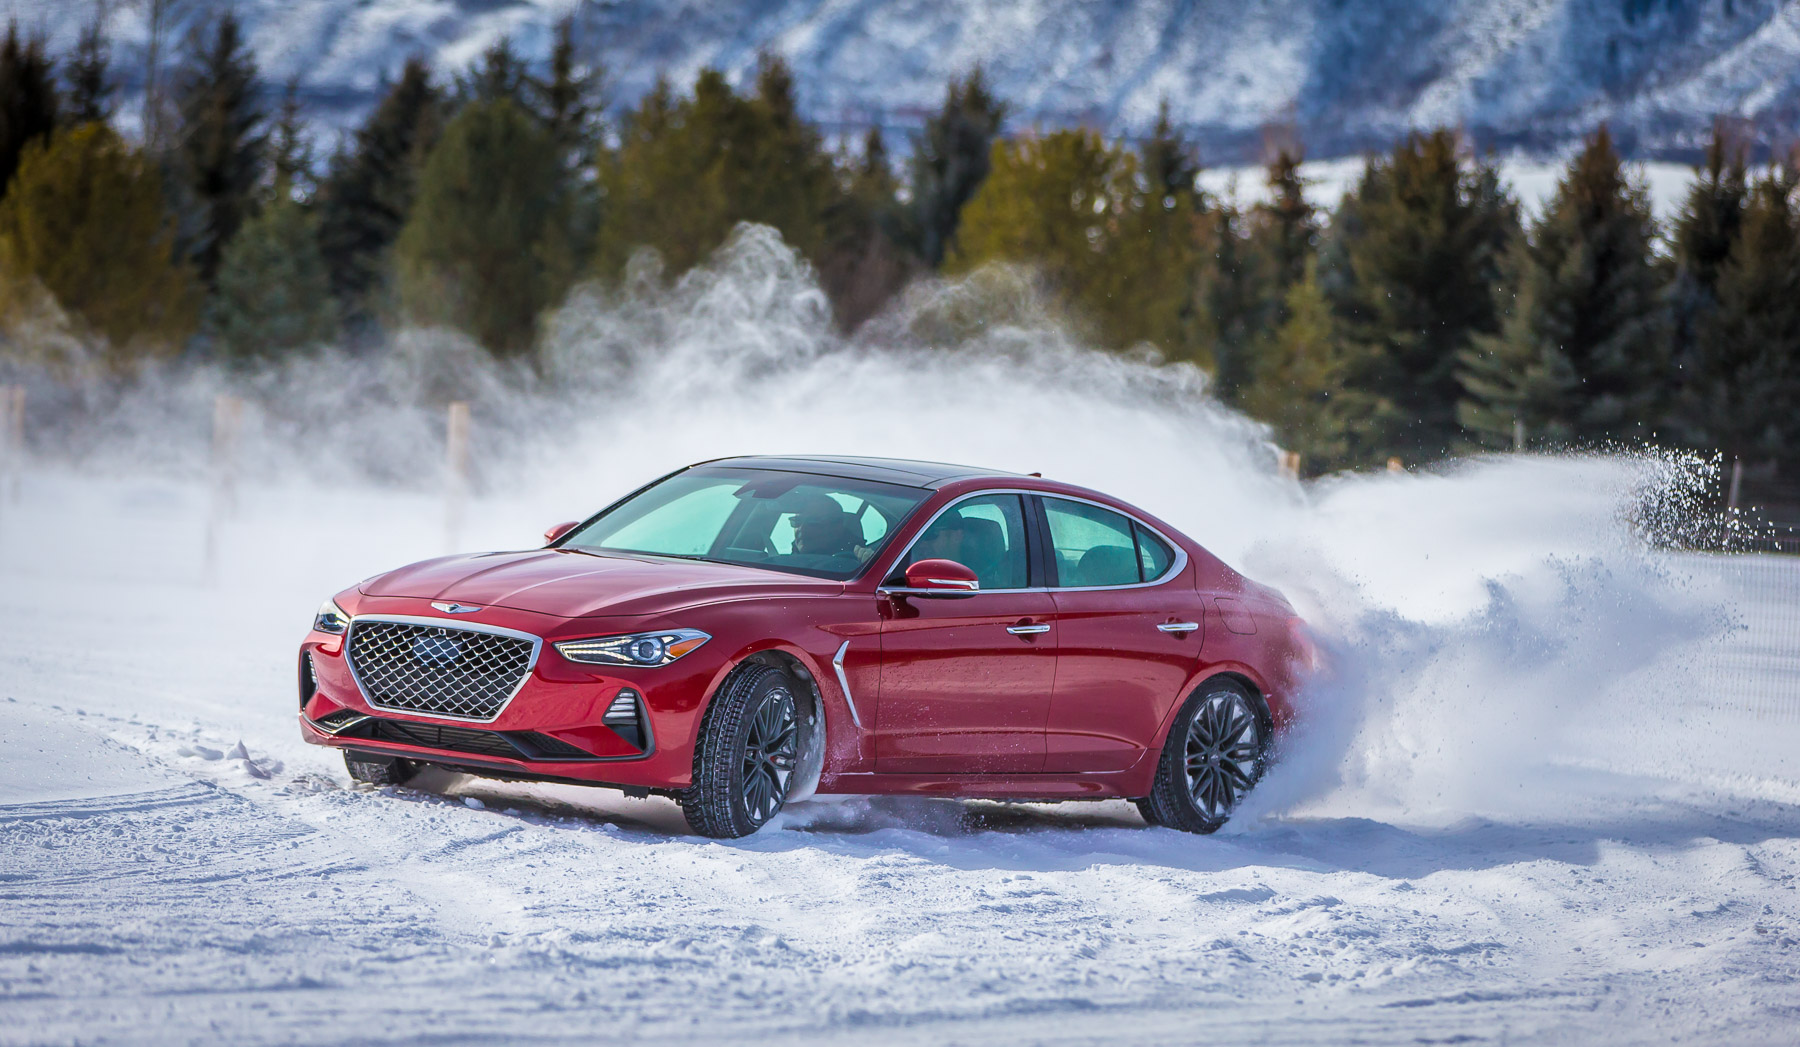 Genesis G70 in the snow